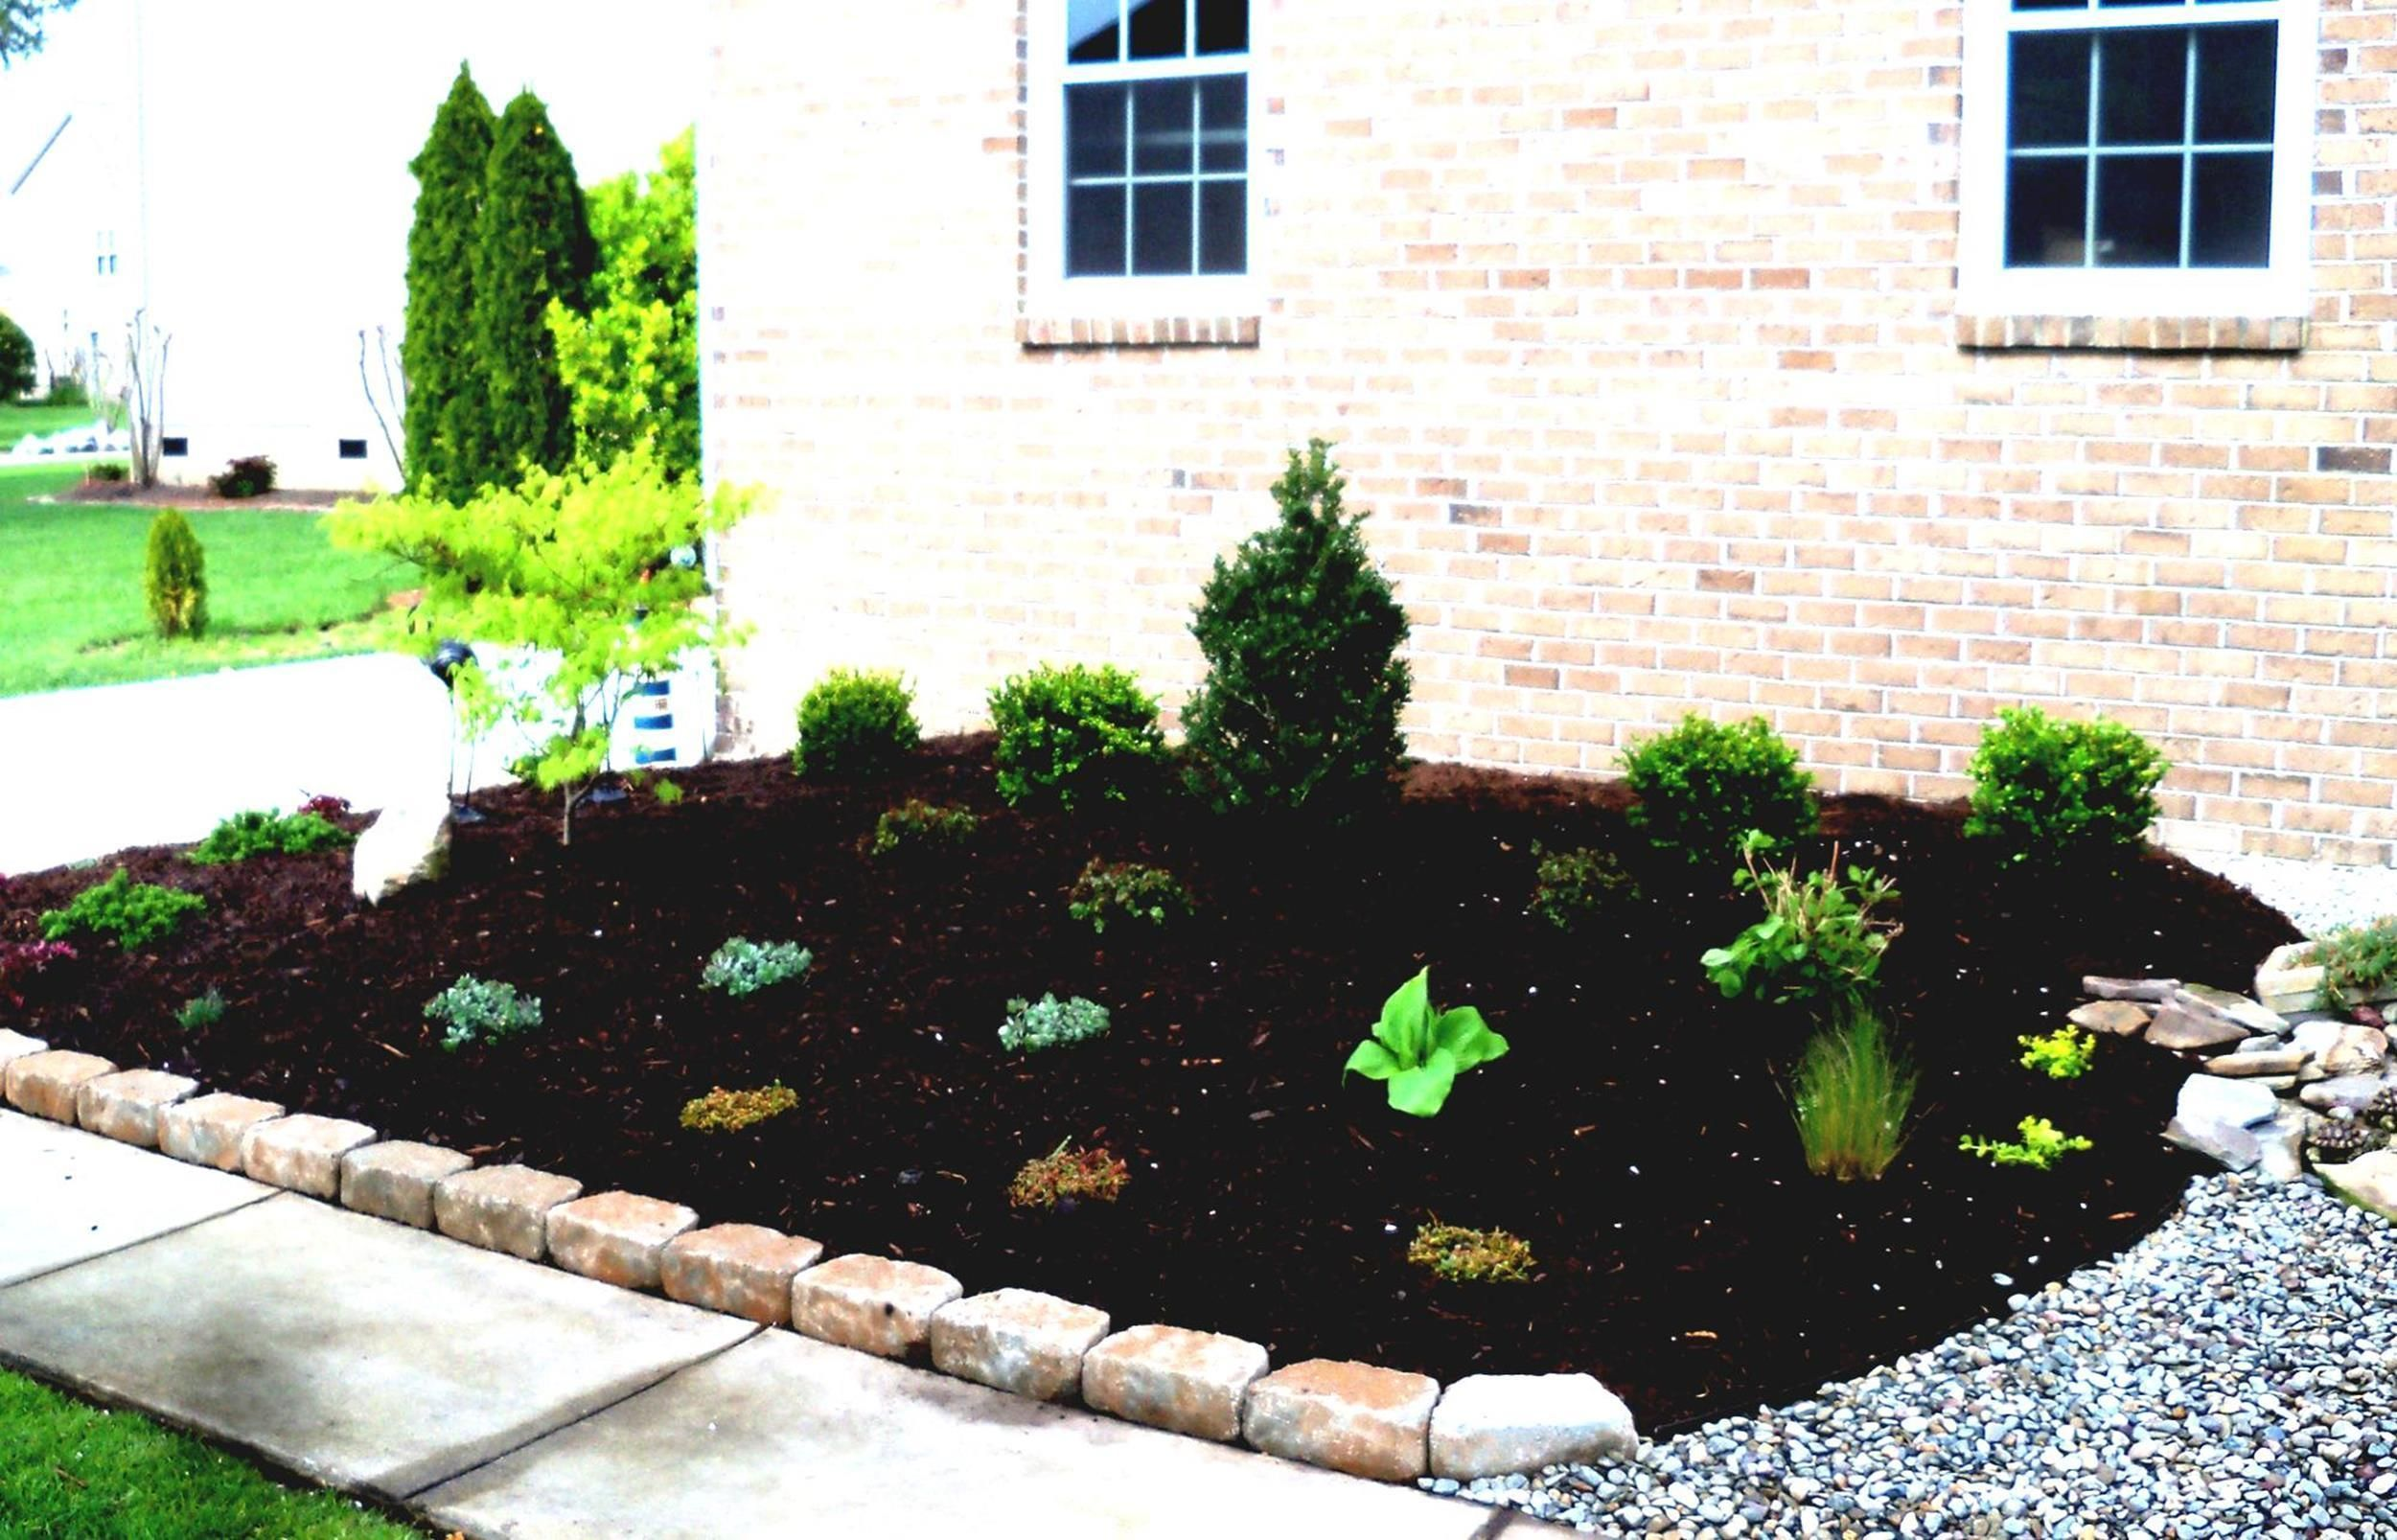 Home vegetable garden design   Cheap Landscaping Ideas With Rocks And Mulch  Cheap Landscaping